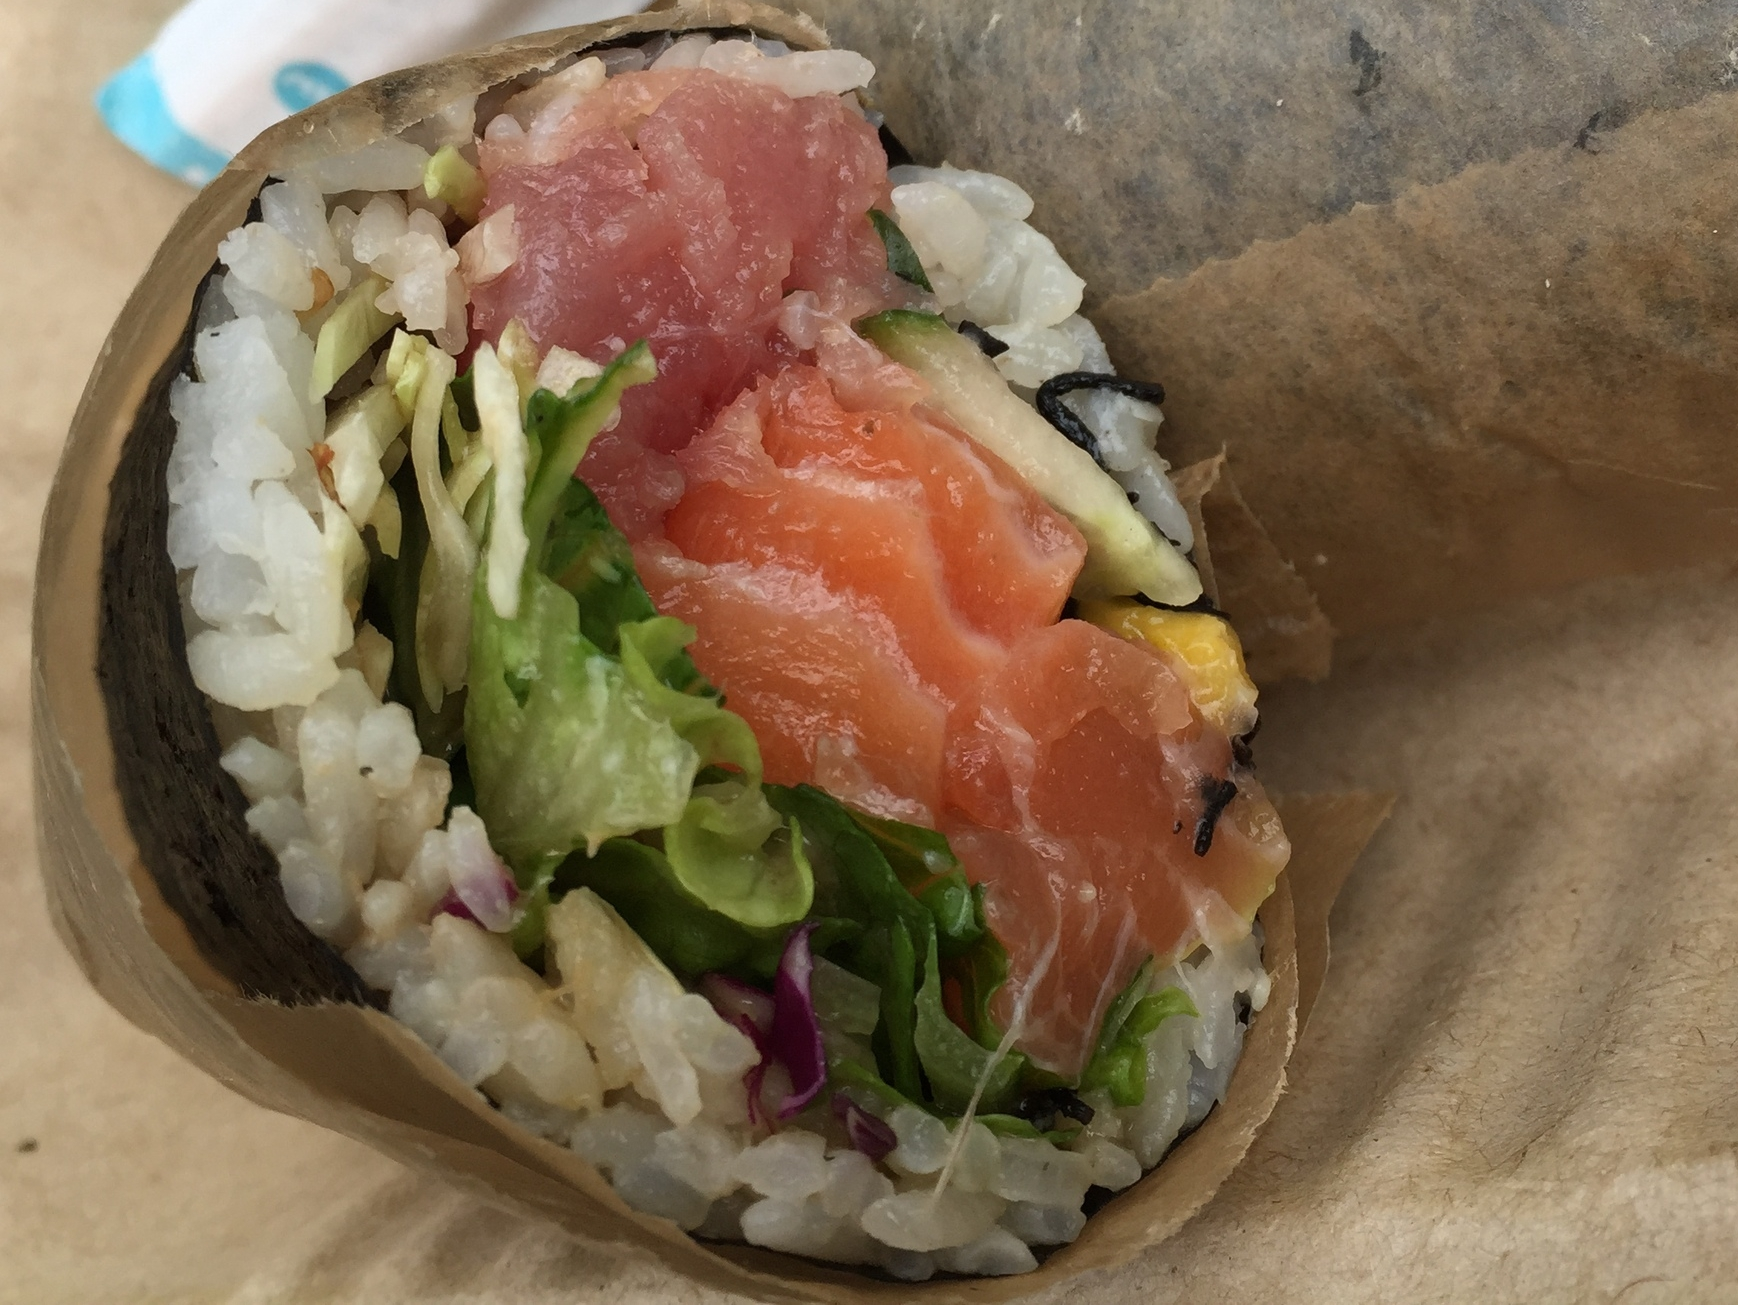 Here's a poke burrito found at Pokeworks in midtown New York. Be prepared when you go because the line for that place can get really long especially starting at the 11am lunch rush. This one is wrapped in seaweed paper with rice, a mix of vegetables and a mix of salmon and tuna sashimi.